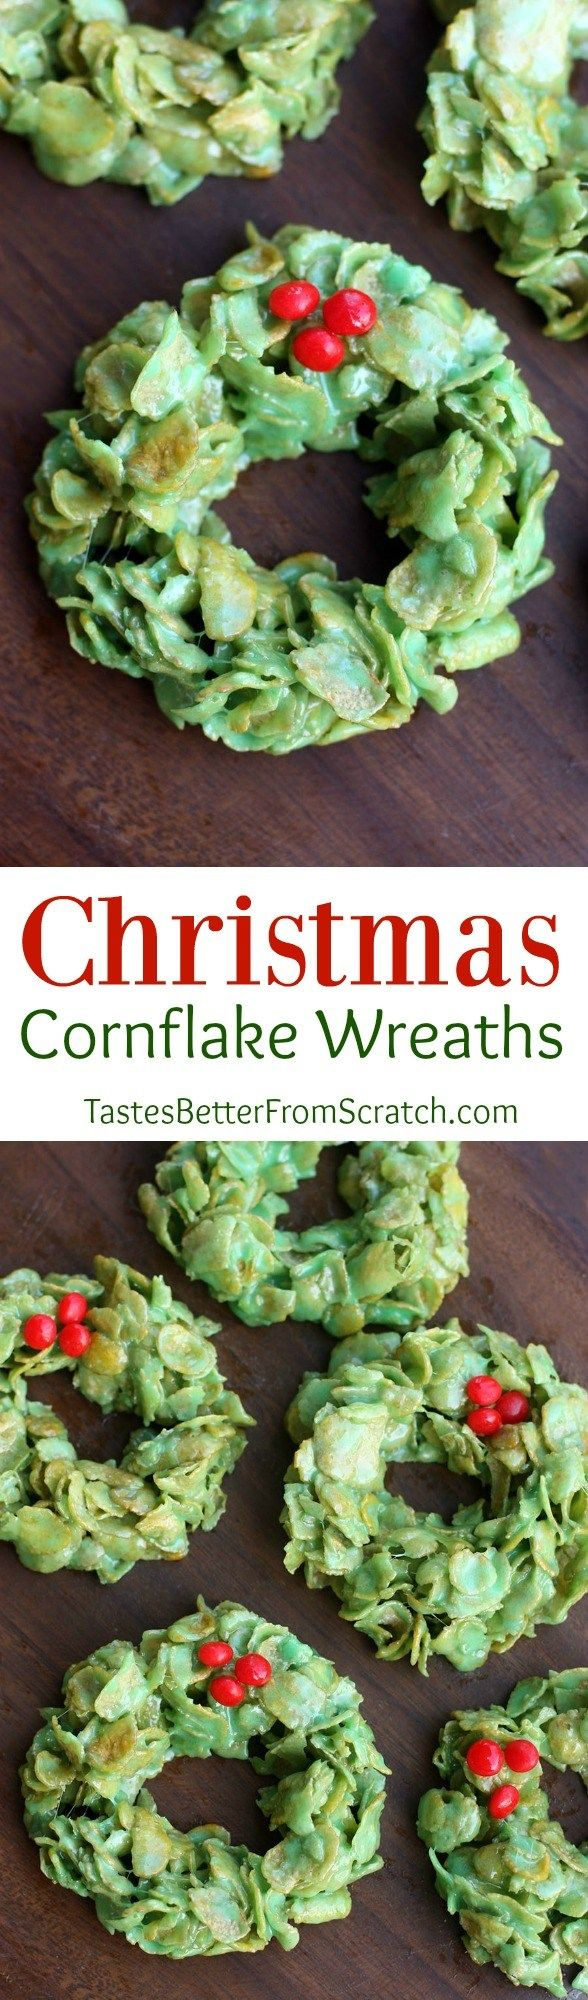 Christmas Cornflake Wreaths are one of my favorite easy Christmas treats!   Tastes Better From Scratch